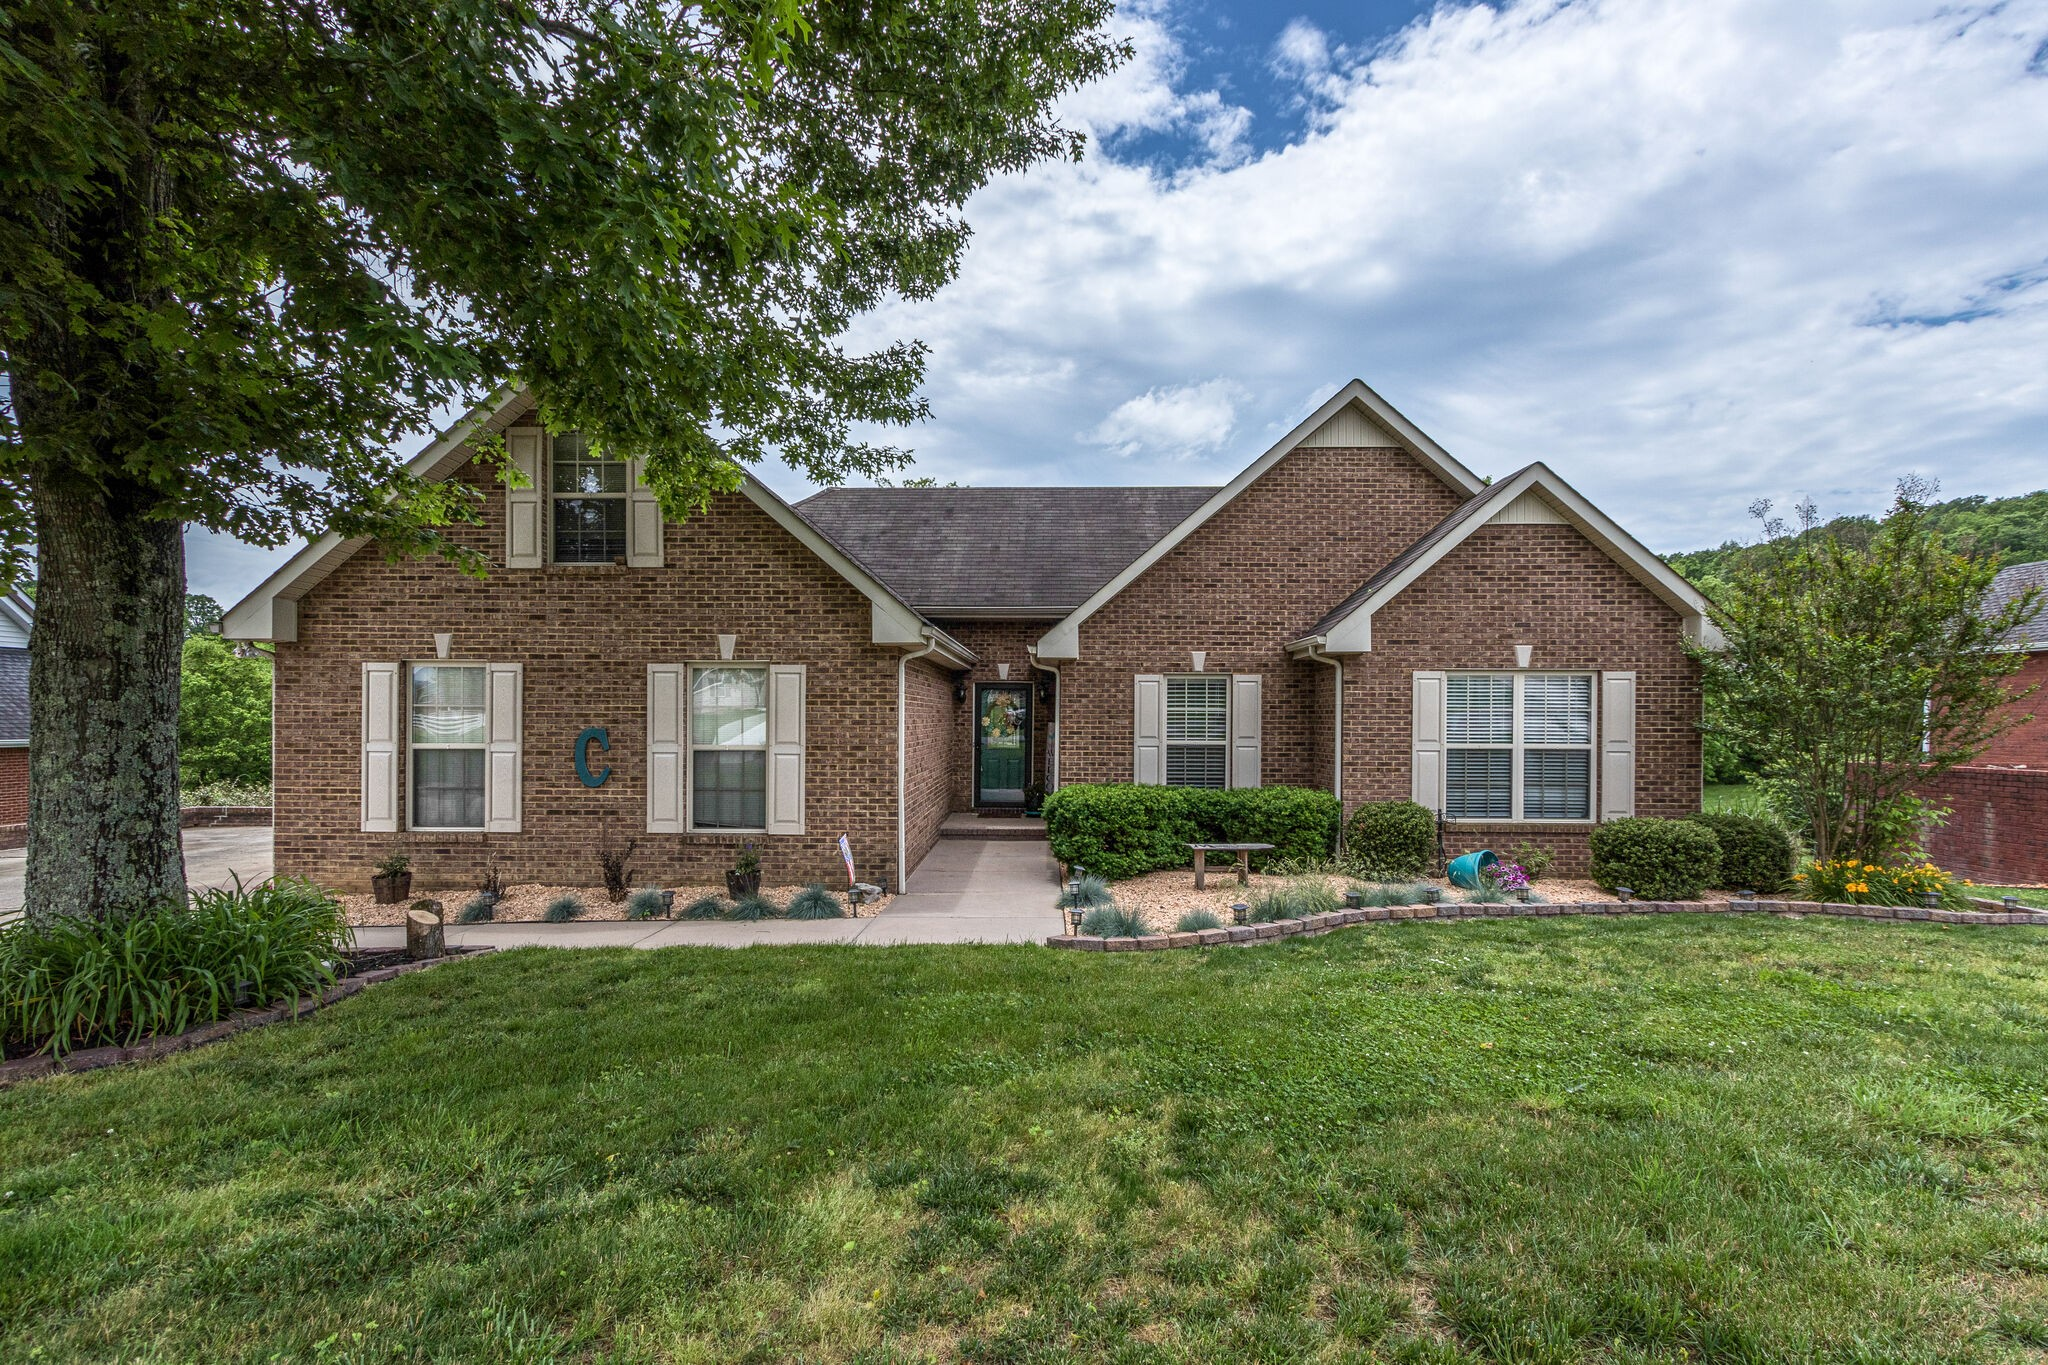 60 Bradford Way, Woodbury, TN 37190 - Woodbury, TN real estate listing